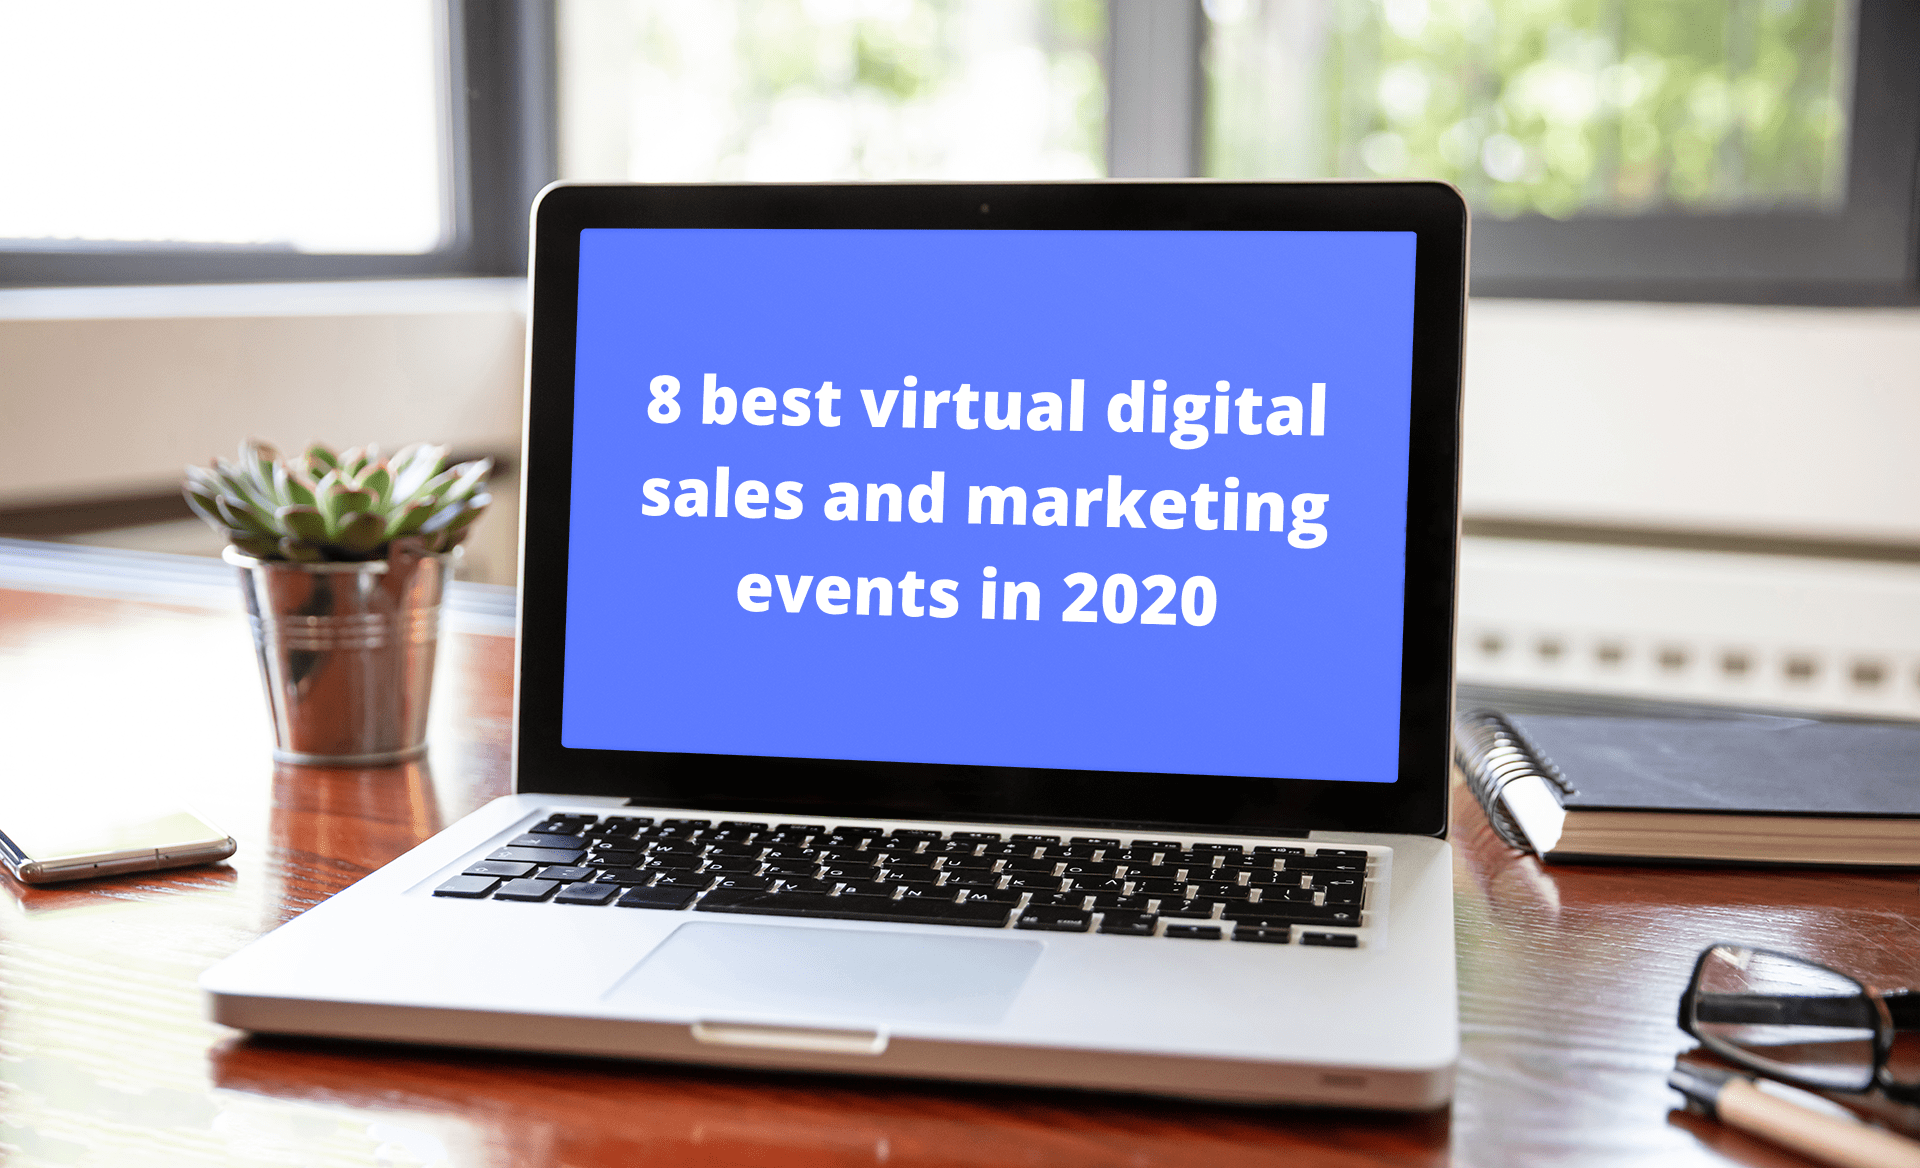 8 best virtual digital sales and marketing events in 2020